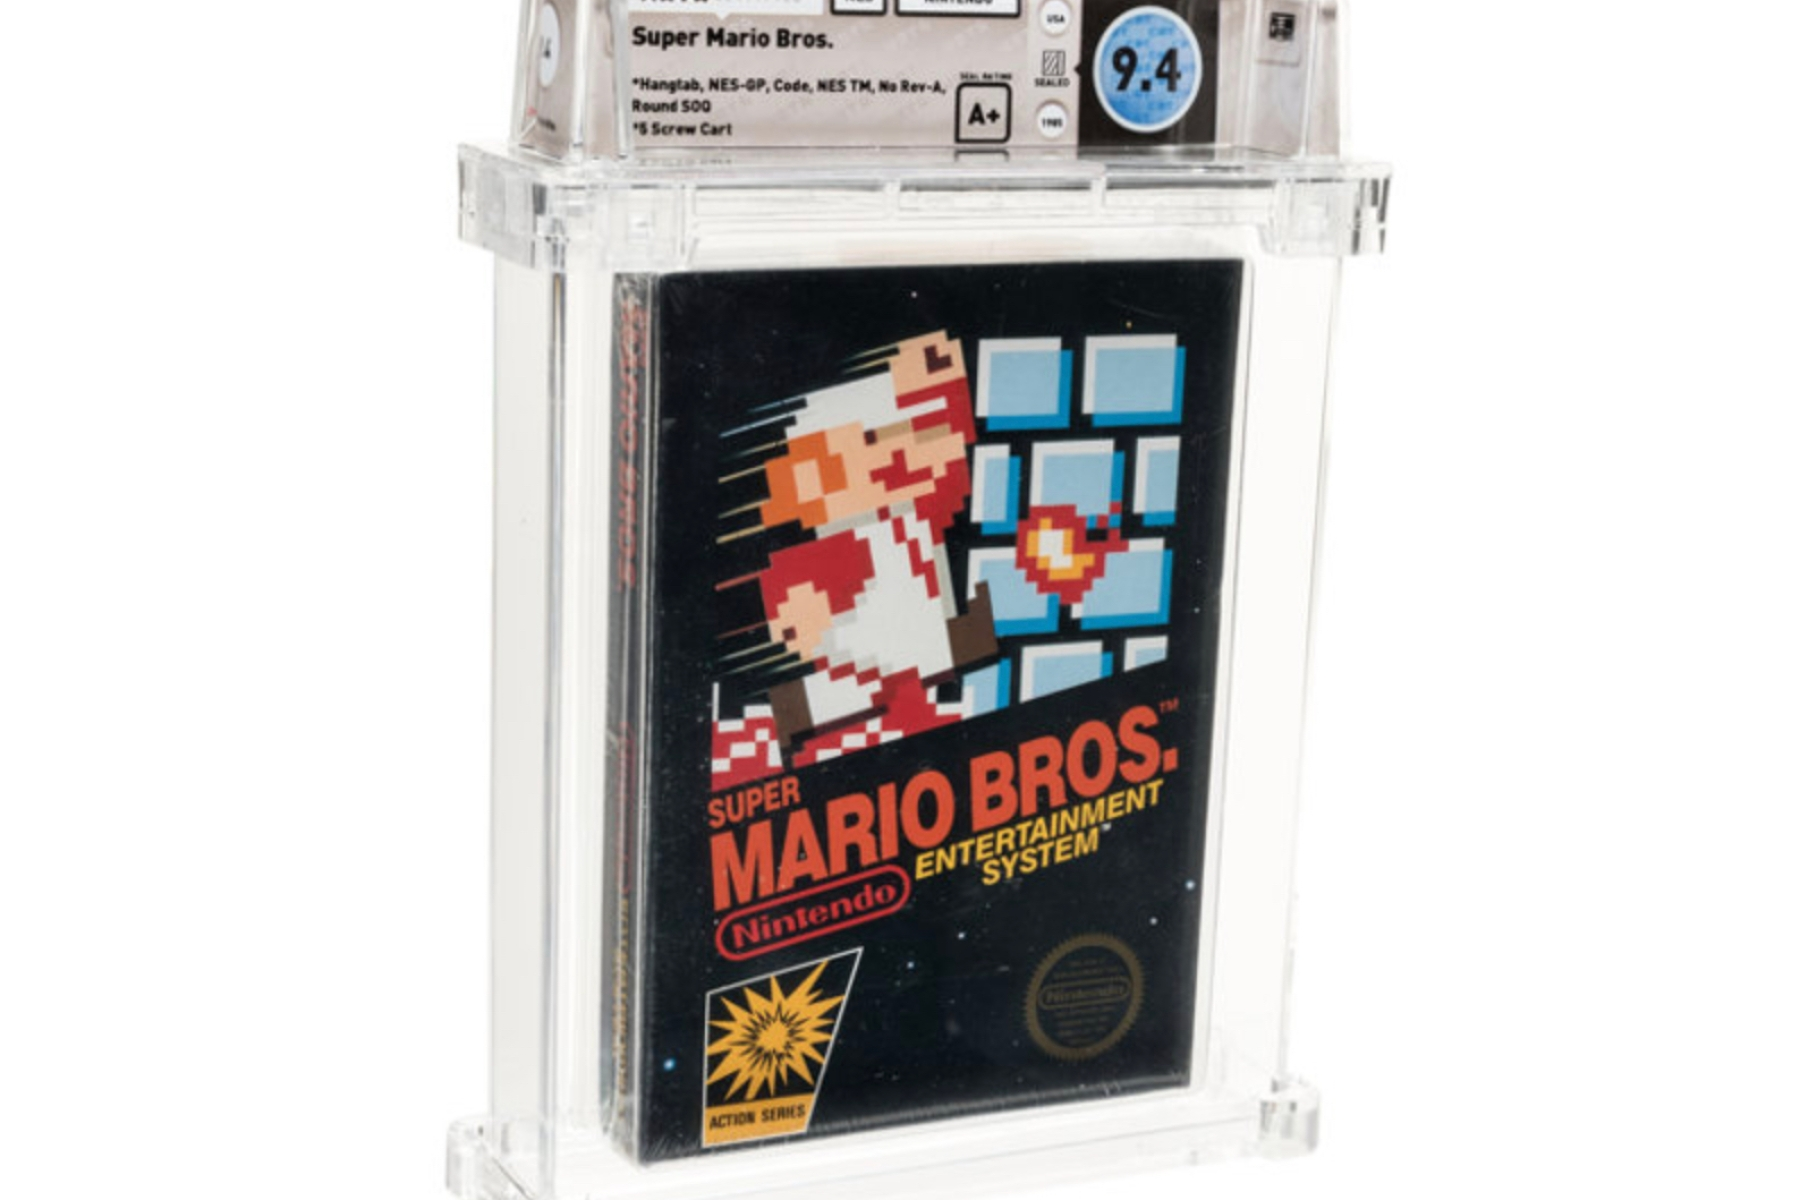 Sealed Copy Of Super Mario Bros Sells For 114 000 At Auction